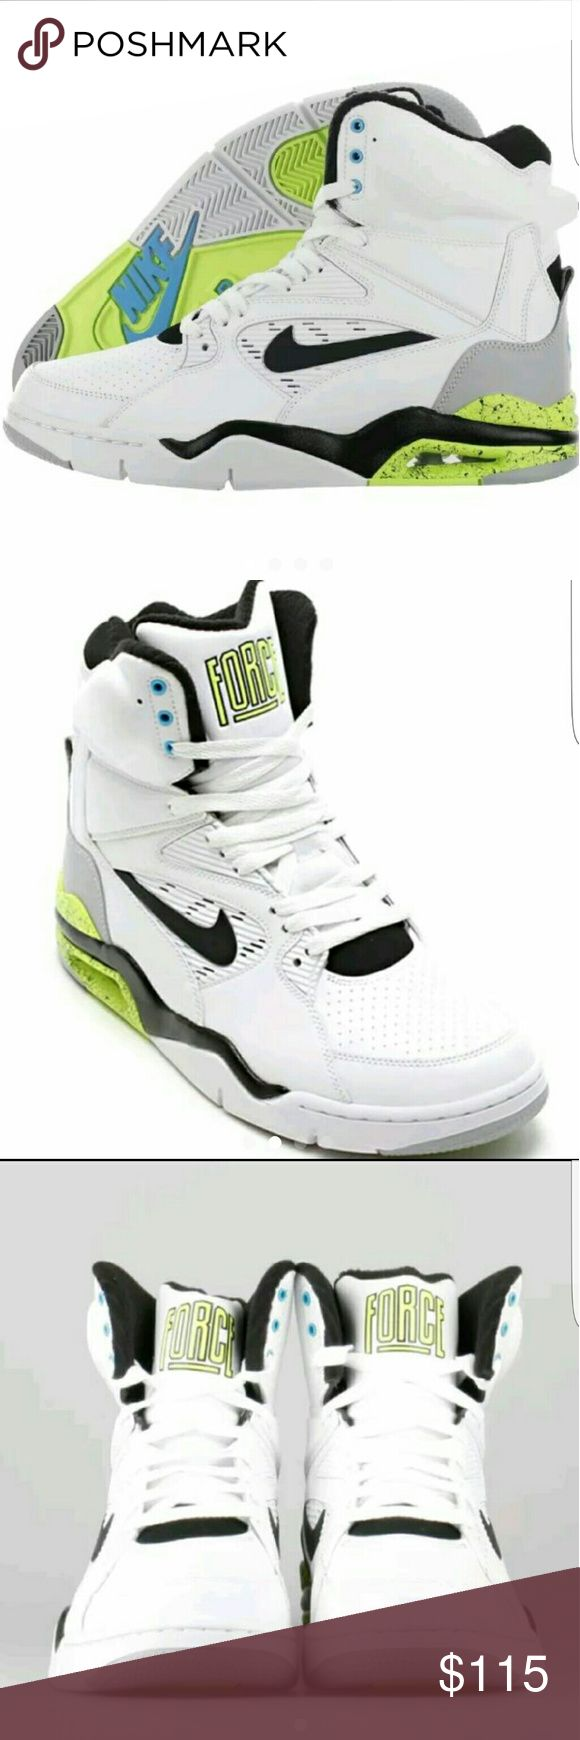 """Nike Command Force """"Billy Hoyle"""" Sz 8 **The top of the shoebox was removed by the store for display purposes therefore this item will ship without the shoebox lid.**   The Nike Air Command Force first touched down in 1990 during a golden age for hoops. Over two decades later, the sneaker that defined an era of basketball excellence makes its long-awaited return to the streets. The elevated design is also recognized for its vibrant color schemes, celebrated with this modern take on the…"""